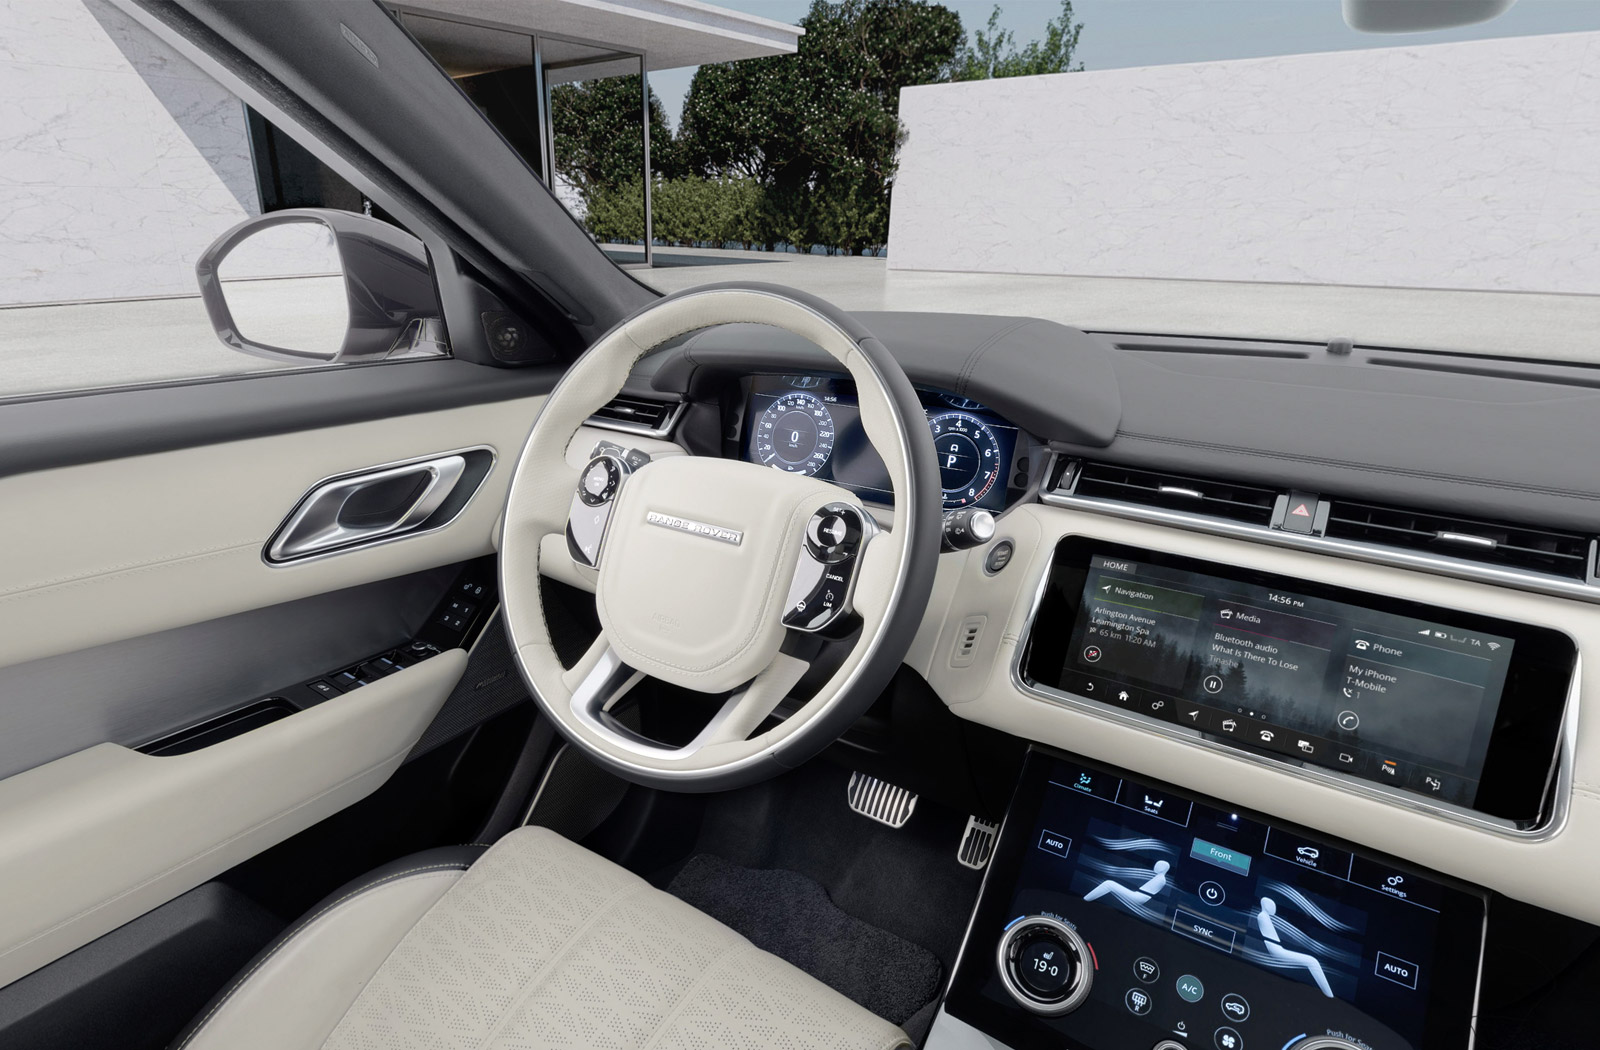 Range Rover Interior >> Car Virtual Reality Range Rover Velar Interior 360 Photography